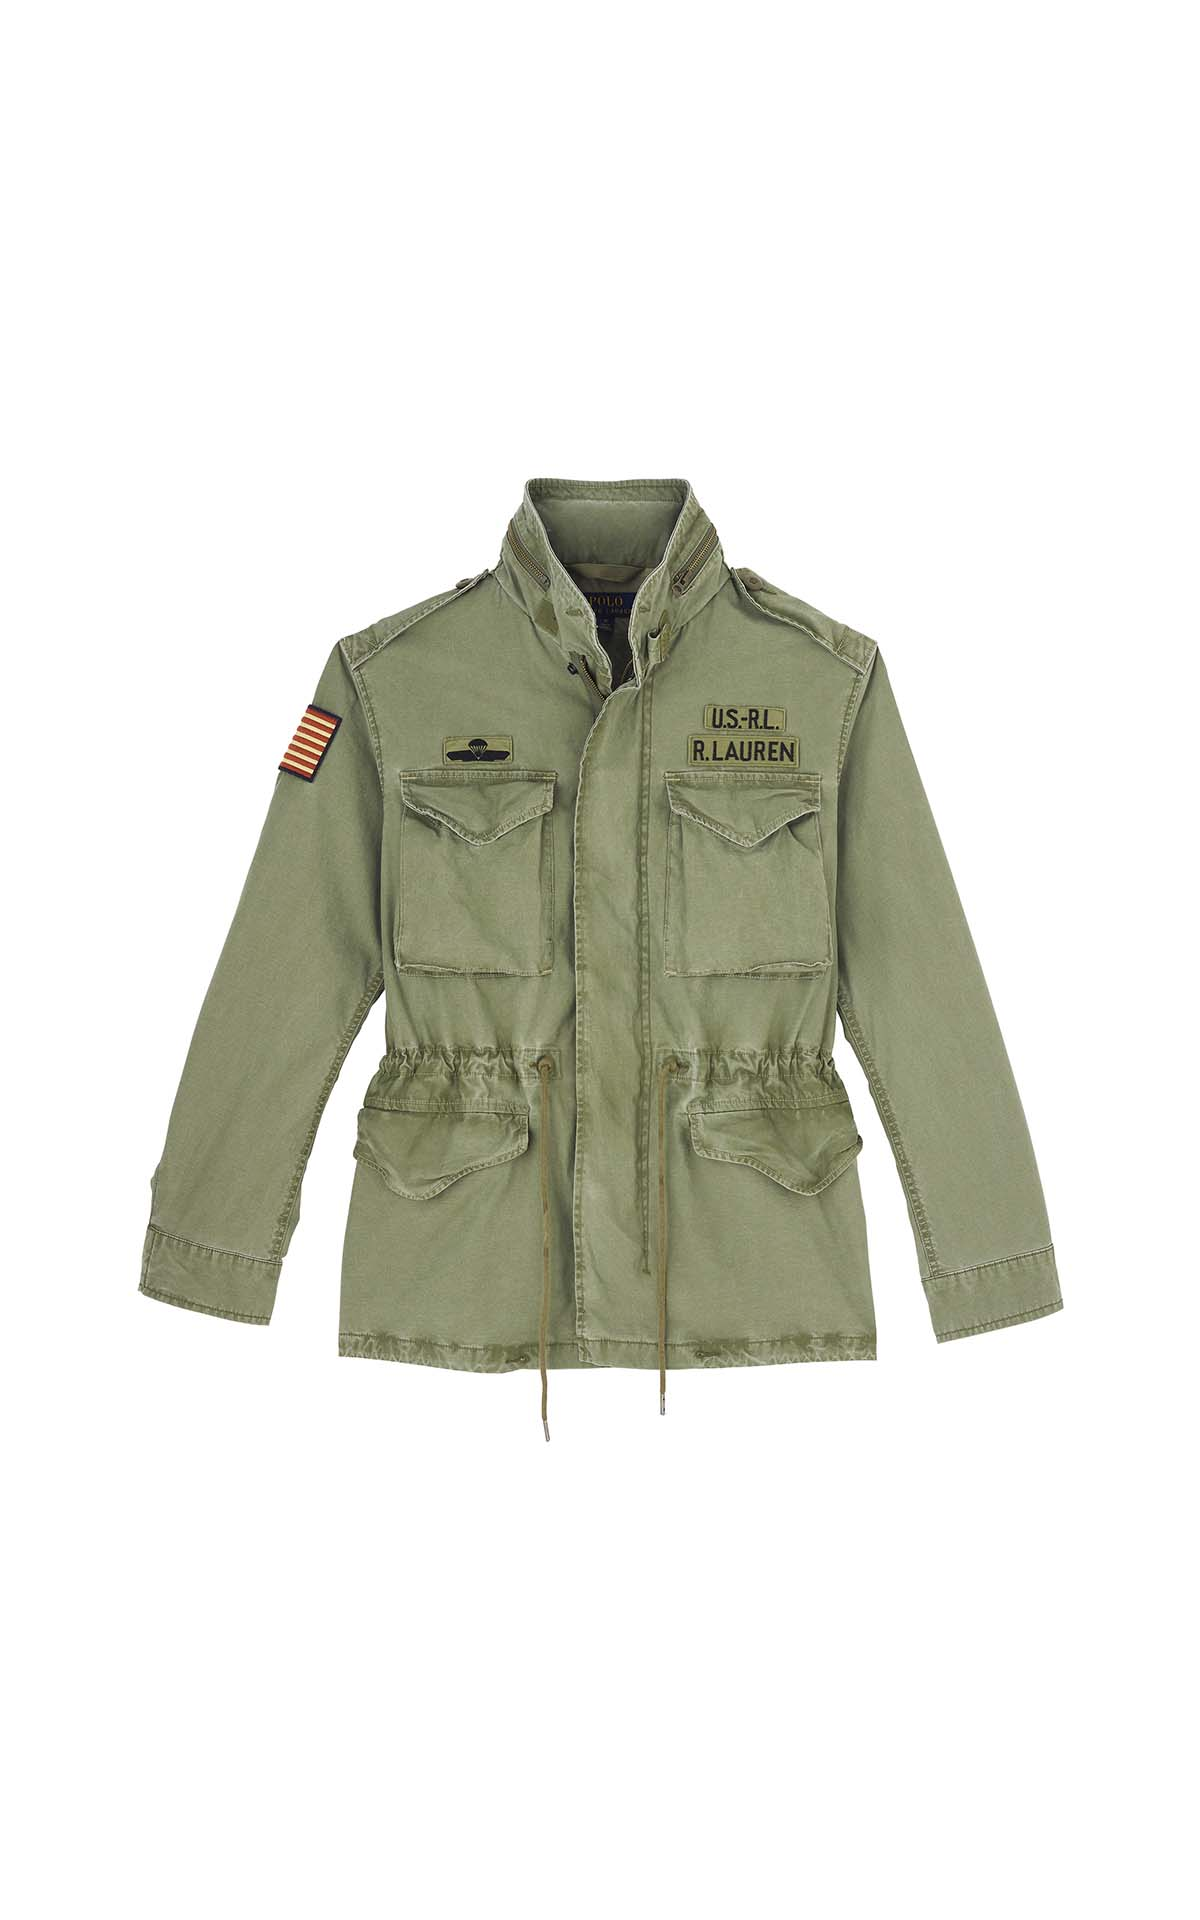 Polo Ralph Lauren M65 combat jacket at The Bicester Village Shopping Collection